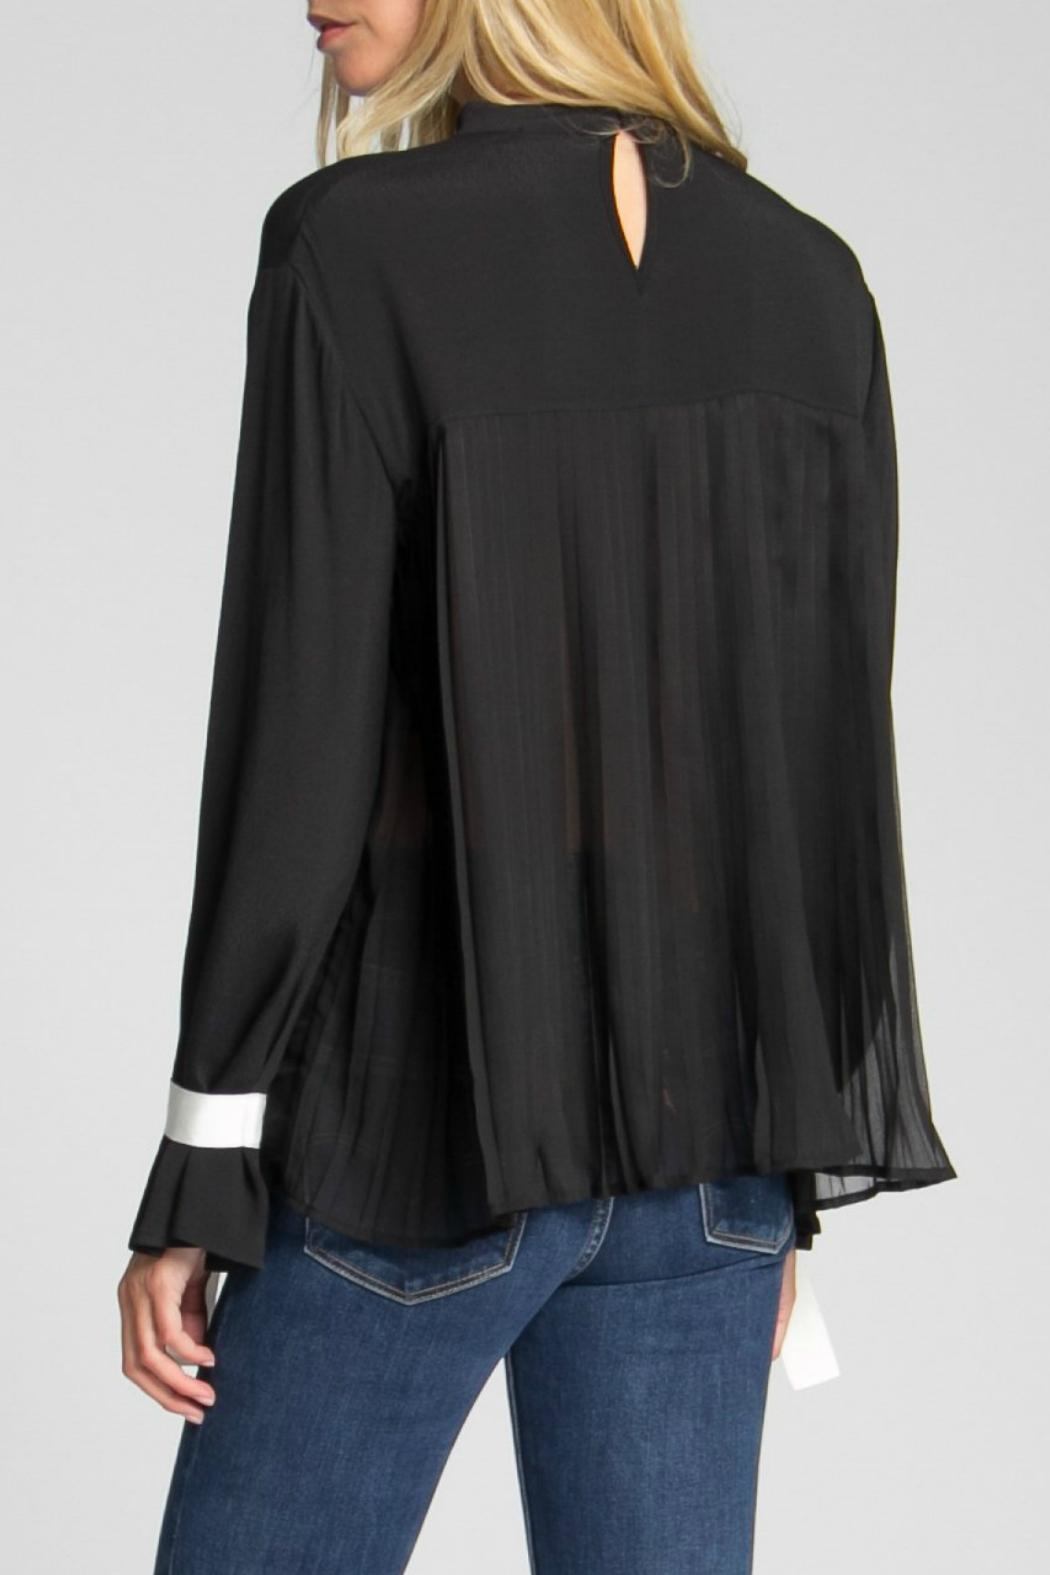 Jack Meets Kate Natalie Ribbon Blouse - Side Cropped Image